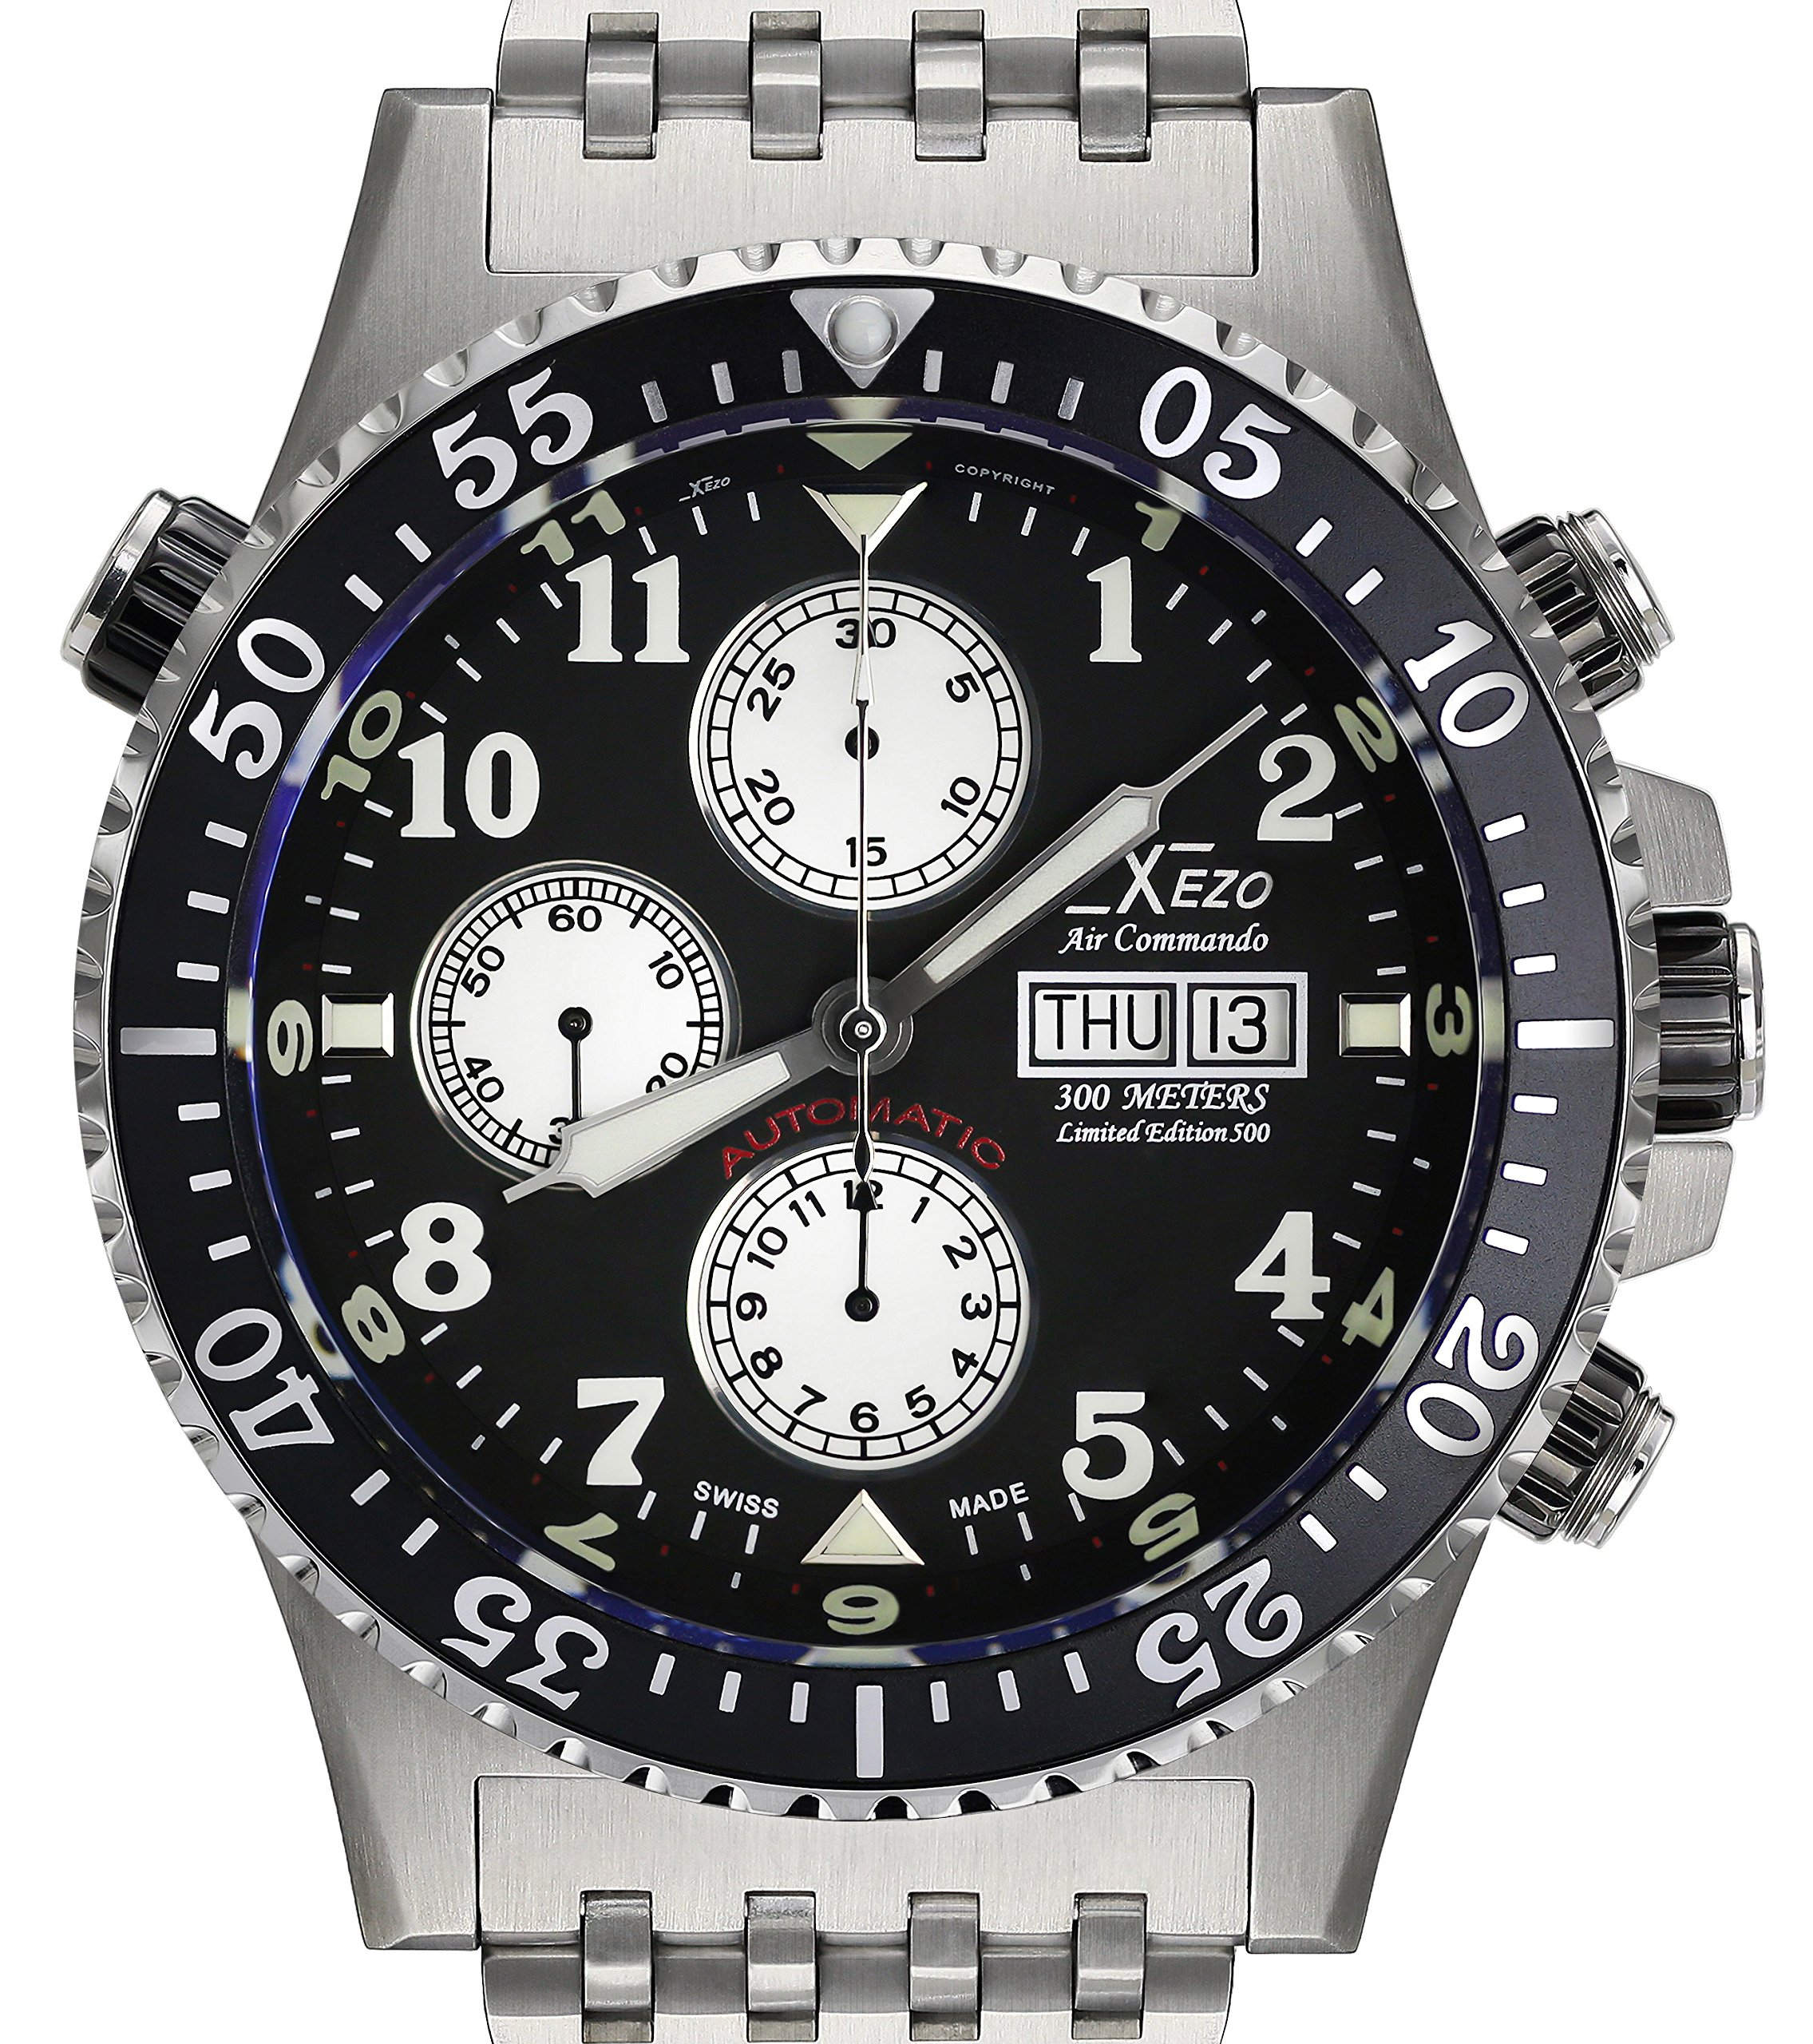 Xezo Men's Air Commando Diver, Pilot Swiss Automatic Valjoux 7750 Chronograph Wrist Watch. 2nd Time Zone. All Solid Steel. Diamond-cut Numbers. Waterproof 30 Bars by Xezo